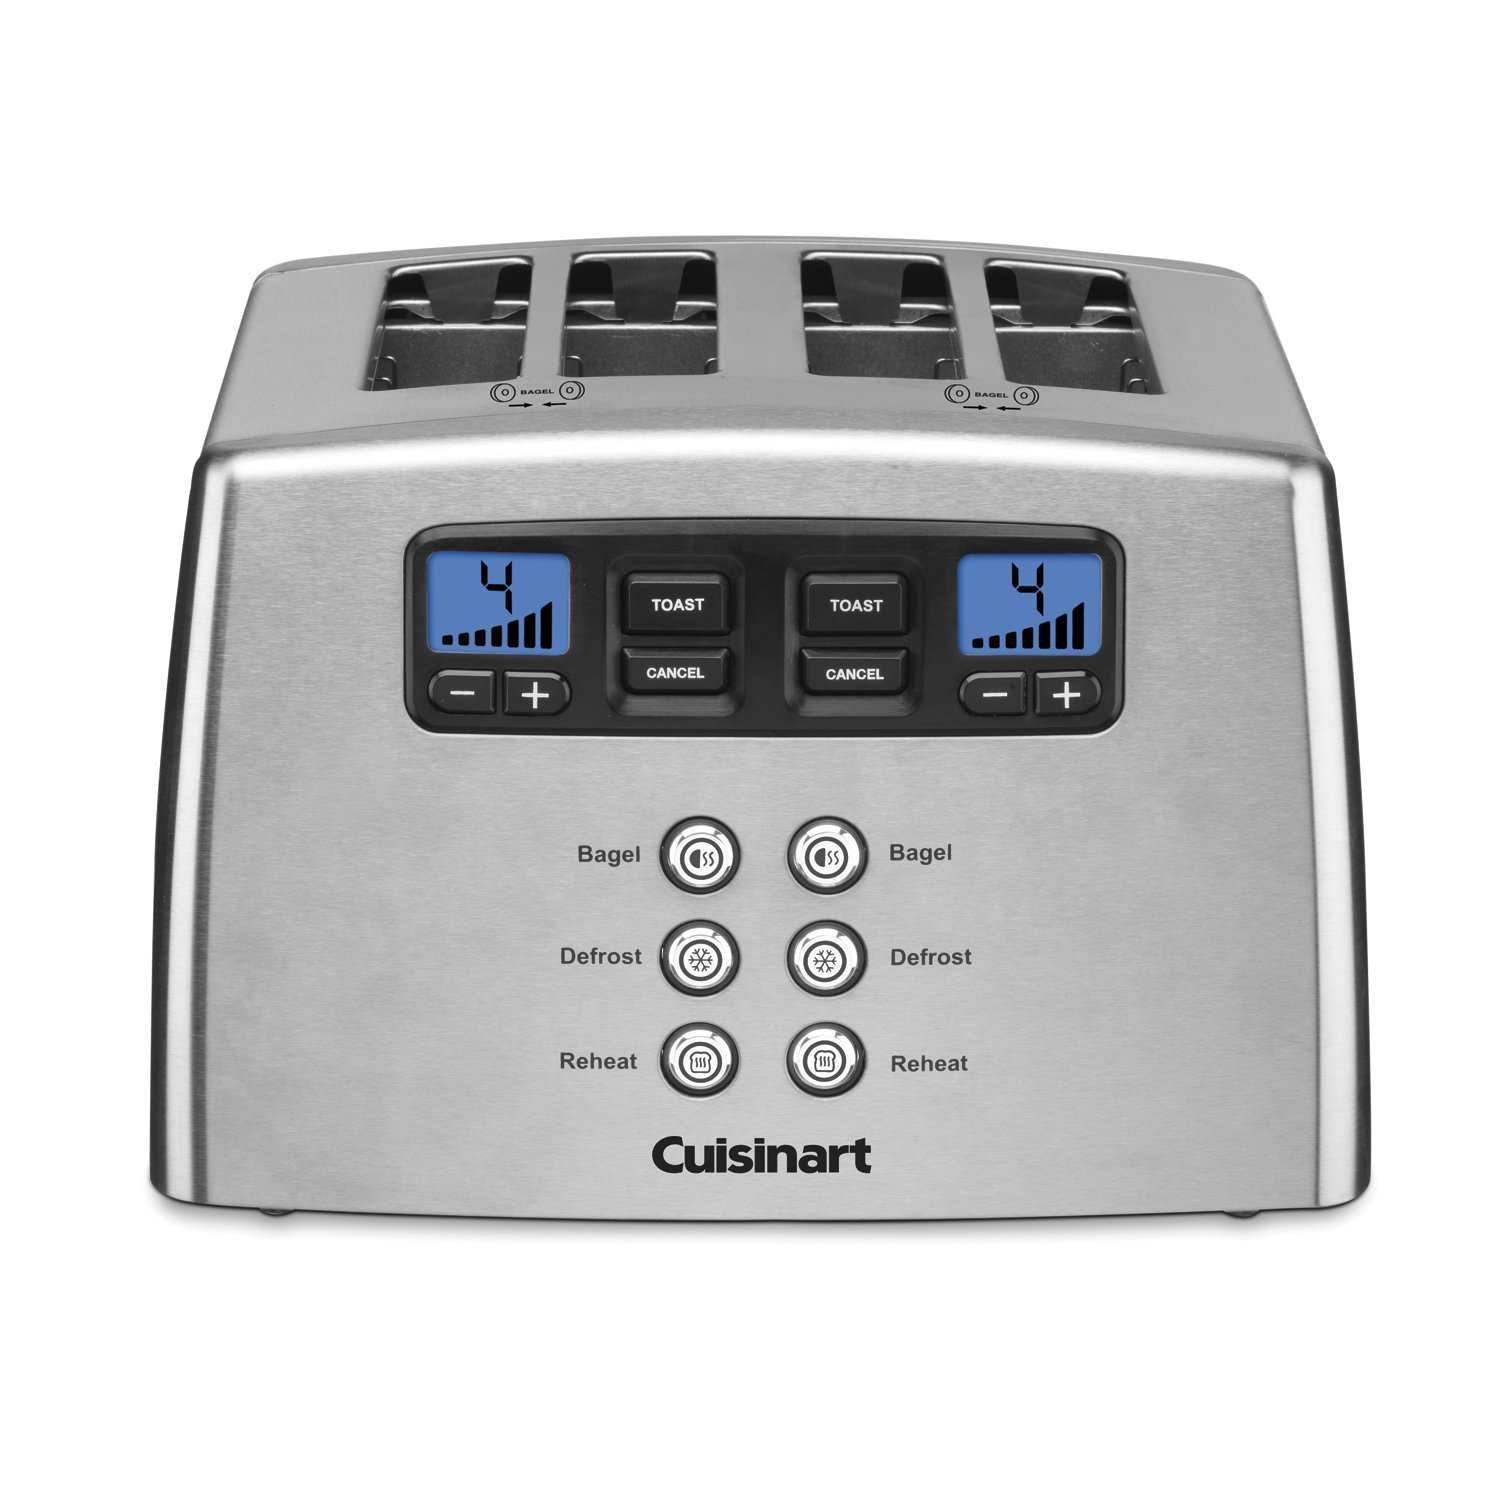 Cuisinart CPT-440 Touch to Toast Leverless 4-Slice Toaster by Cuisinart